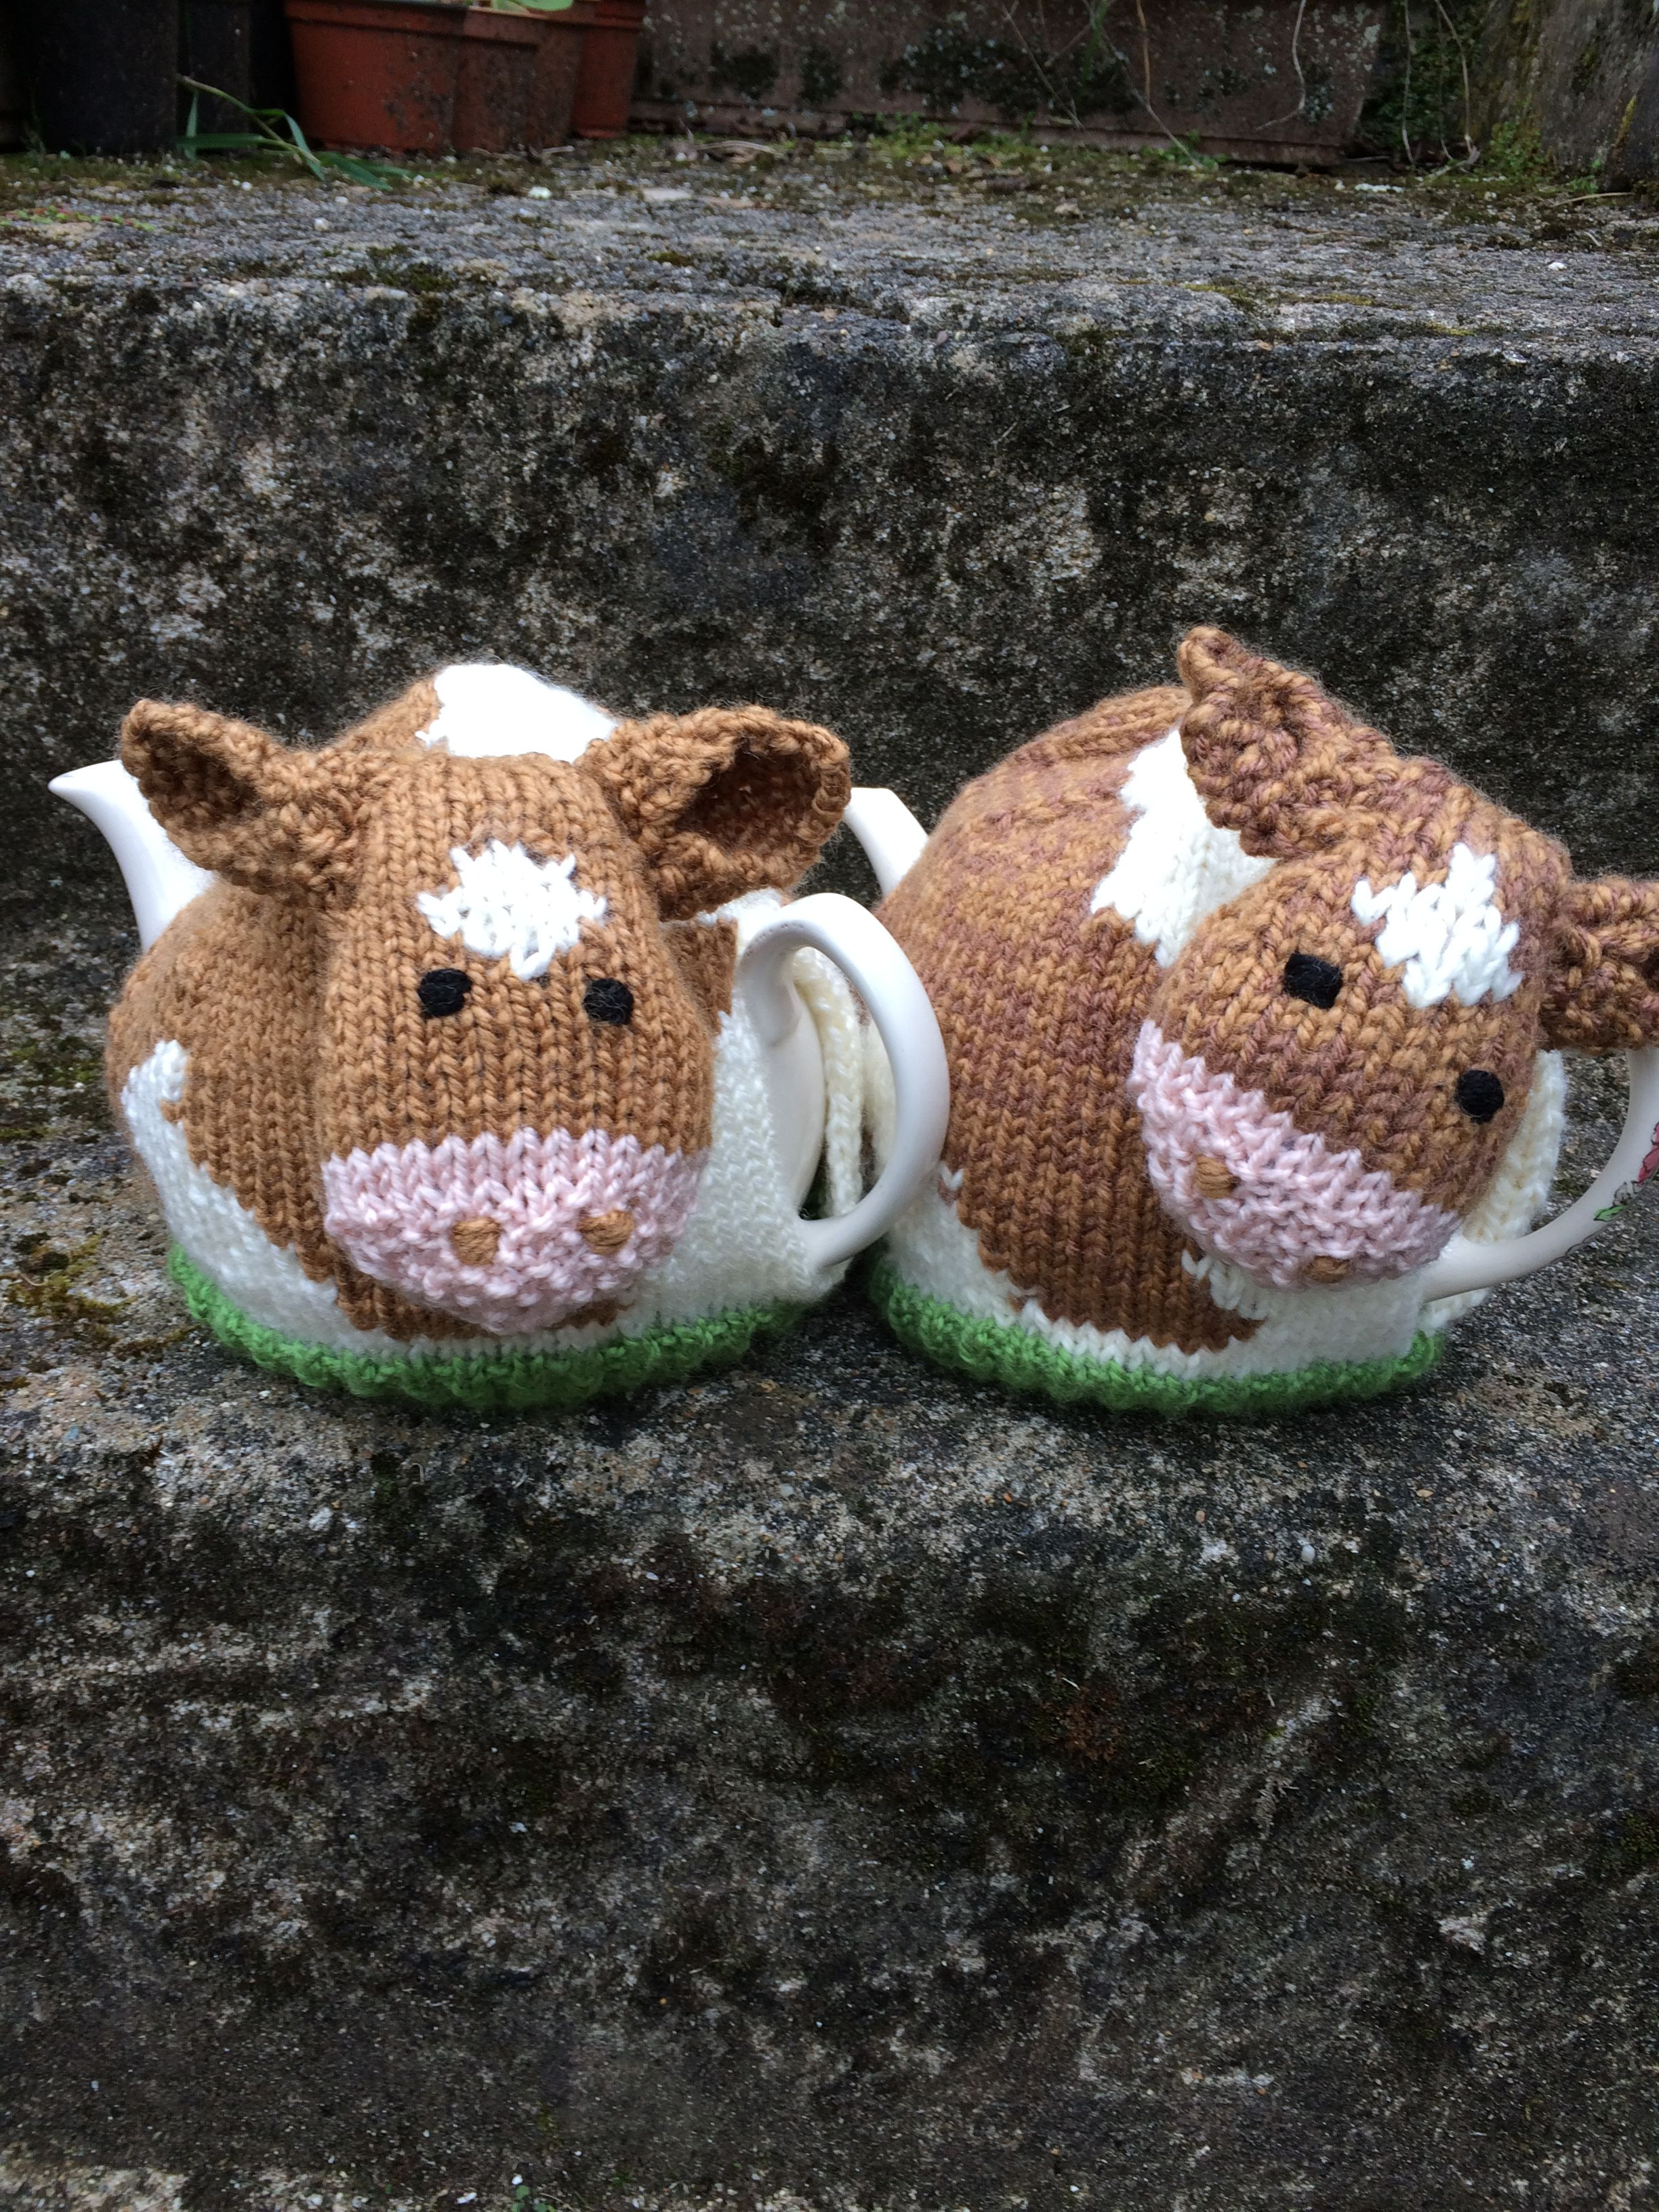 Guernsey Cow Tea Cosies | My Tea Cosies | Pinterest | Guernsey cow ...